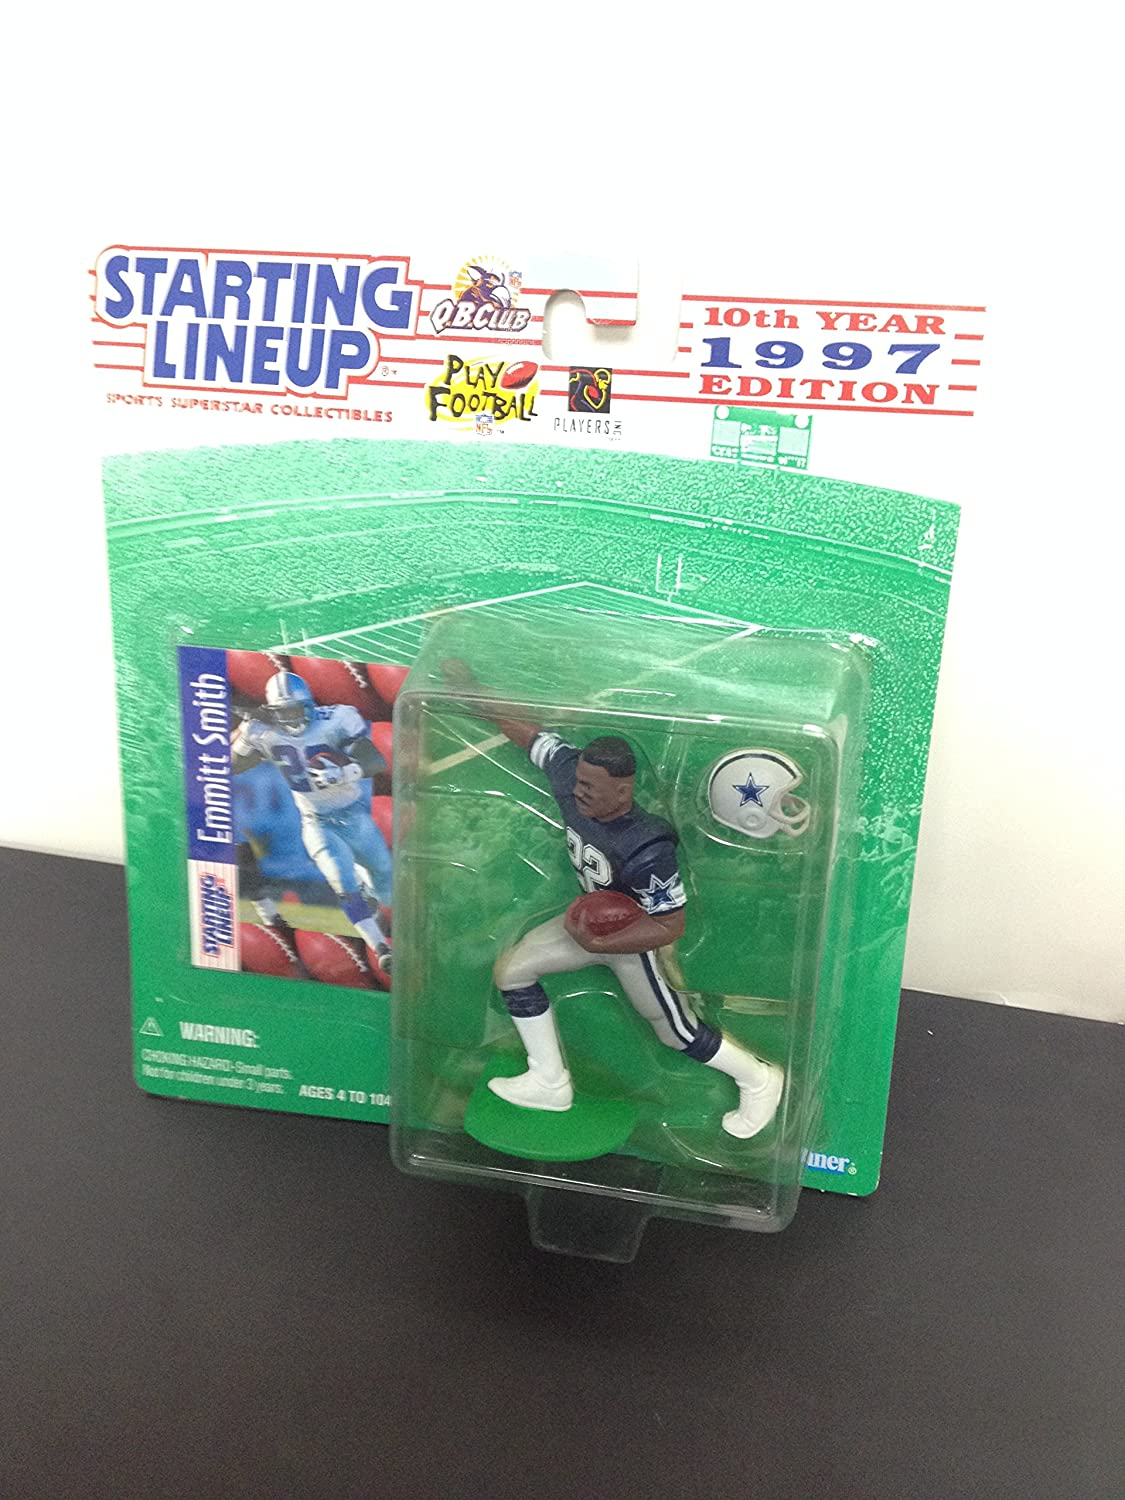 1997 Emmitt Smith Dallas Cowboys Running Back Action Figure With Collectible Trading Card